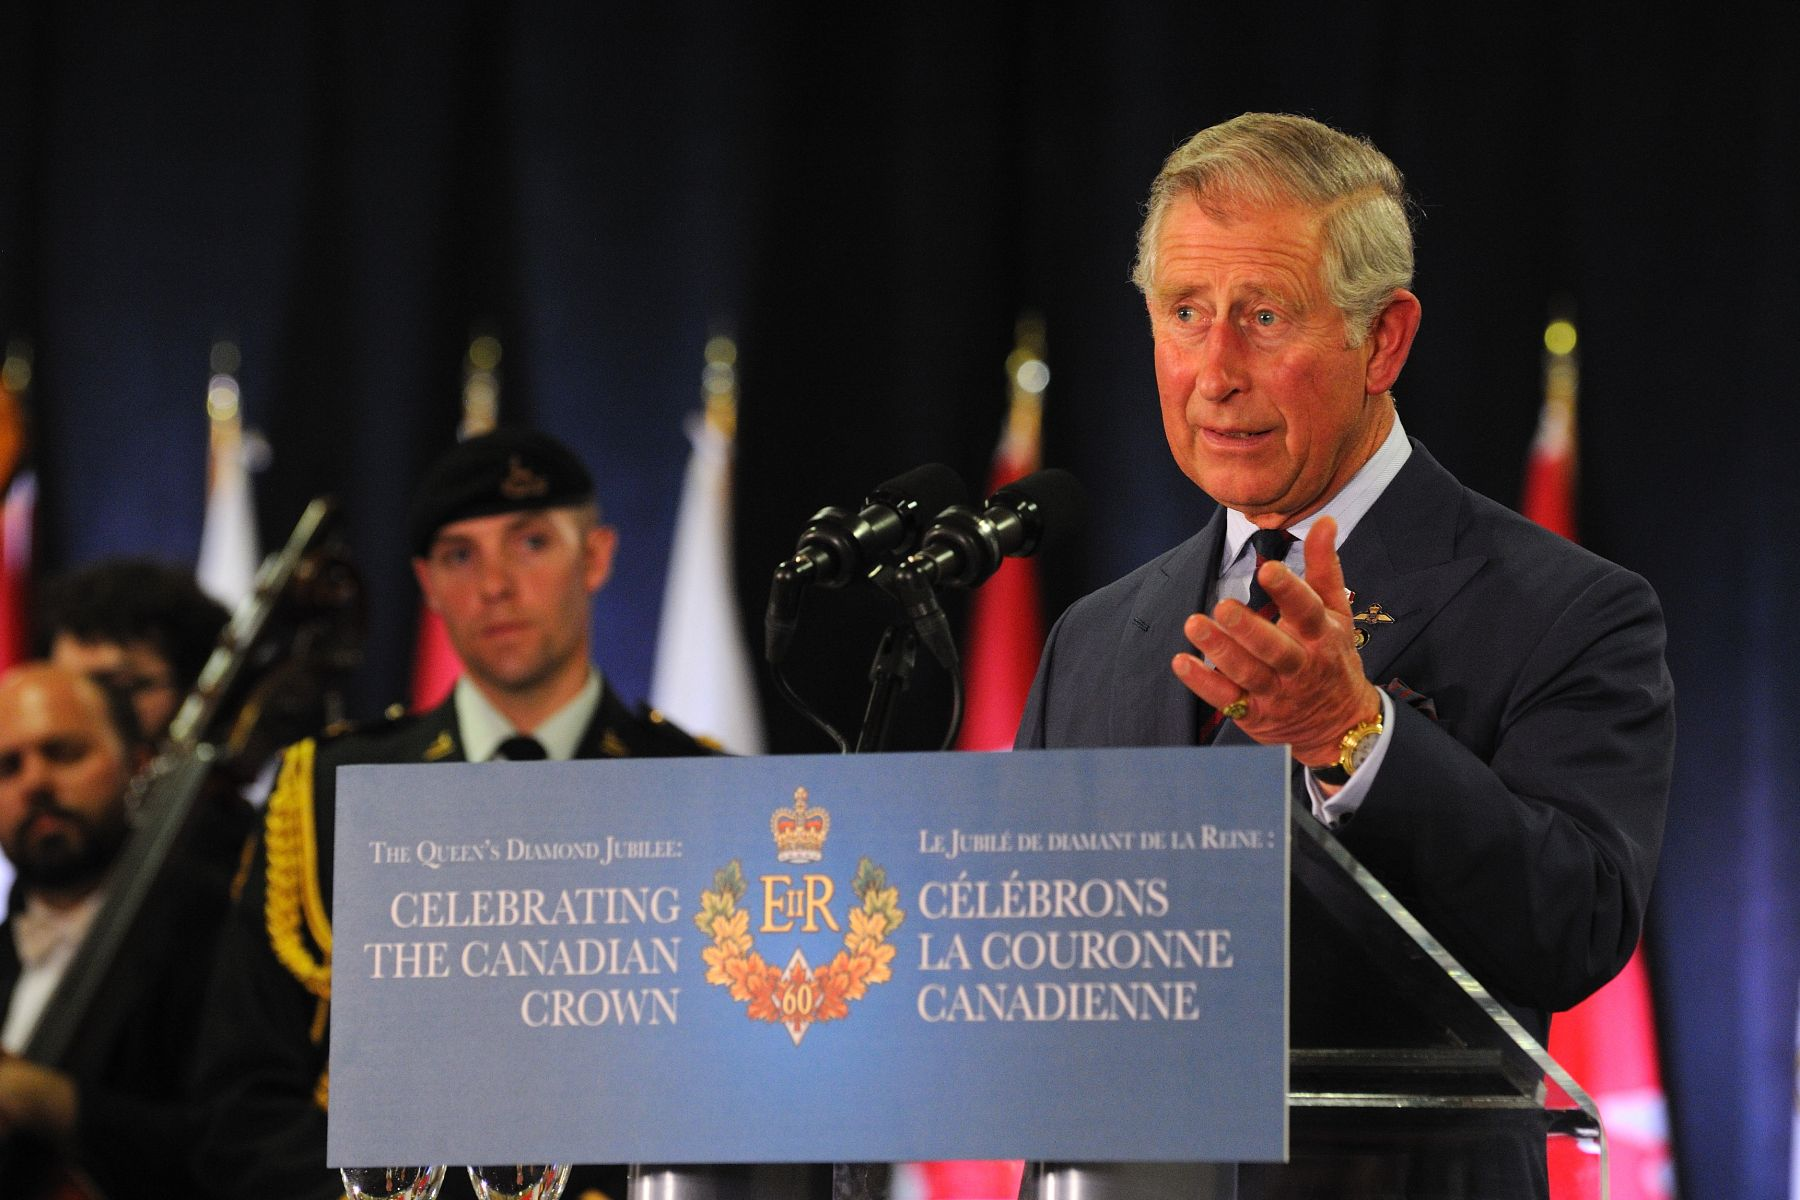 His Royal Highness The Prince of Wales also delivered remarks.